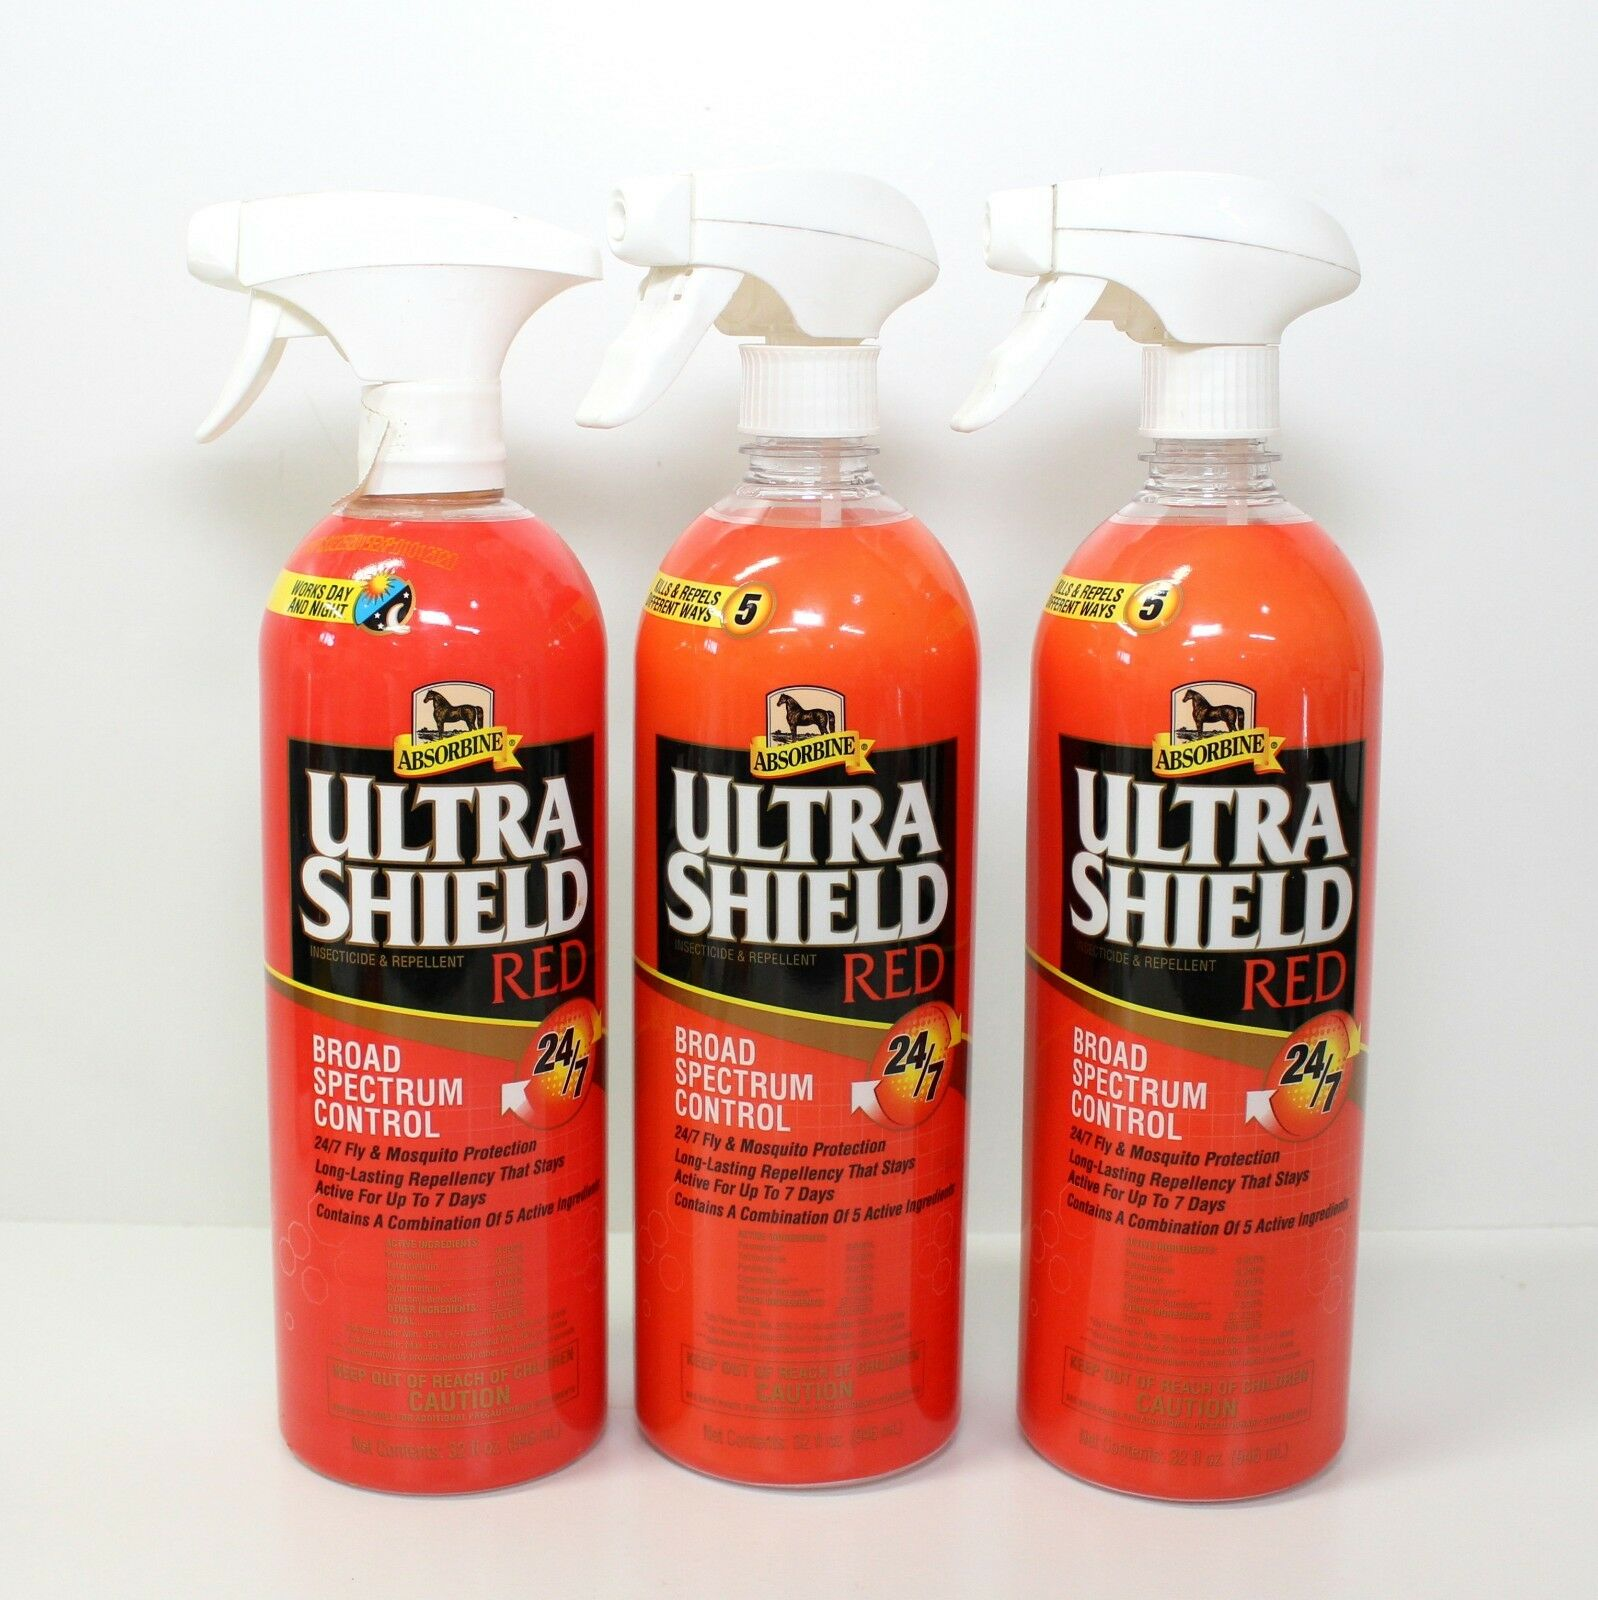 3 Absorbine UltraShield Red Horse Insecticide & Repellent Fly & Mosquito 32oz